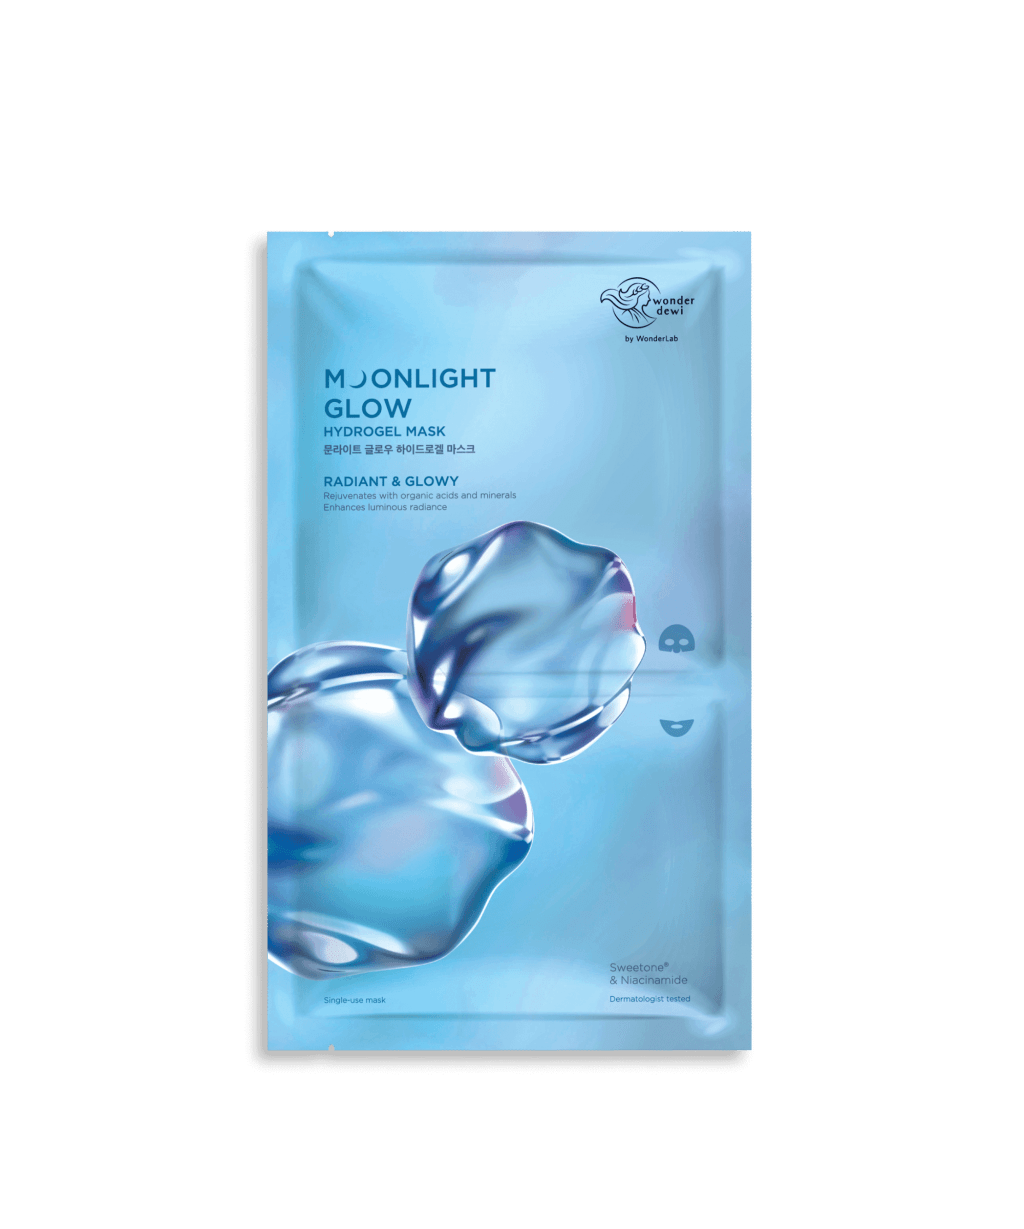 Moonlight Glow Hydrogel Mask